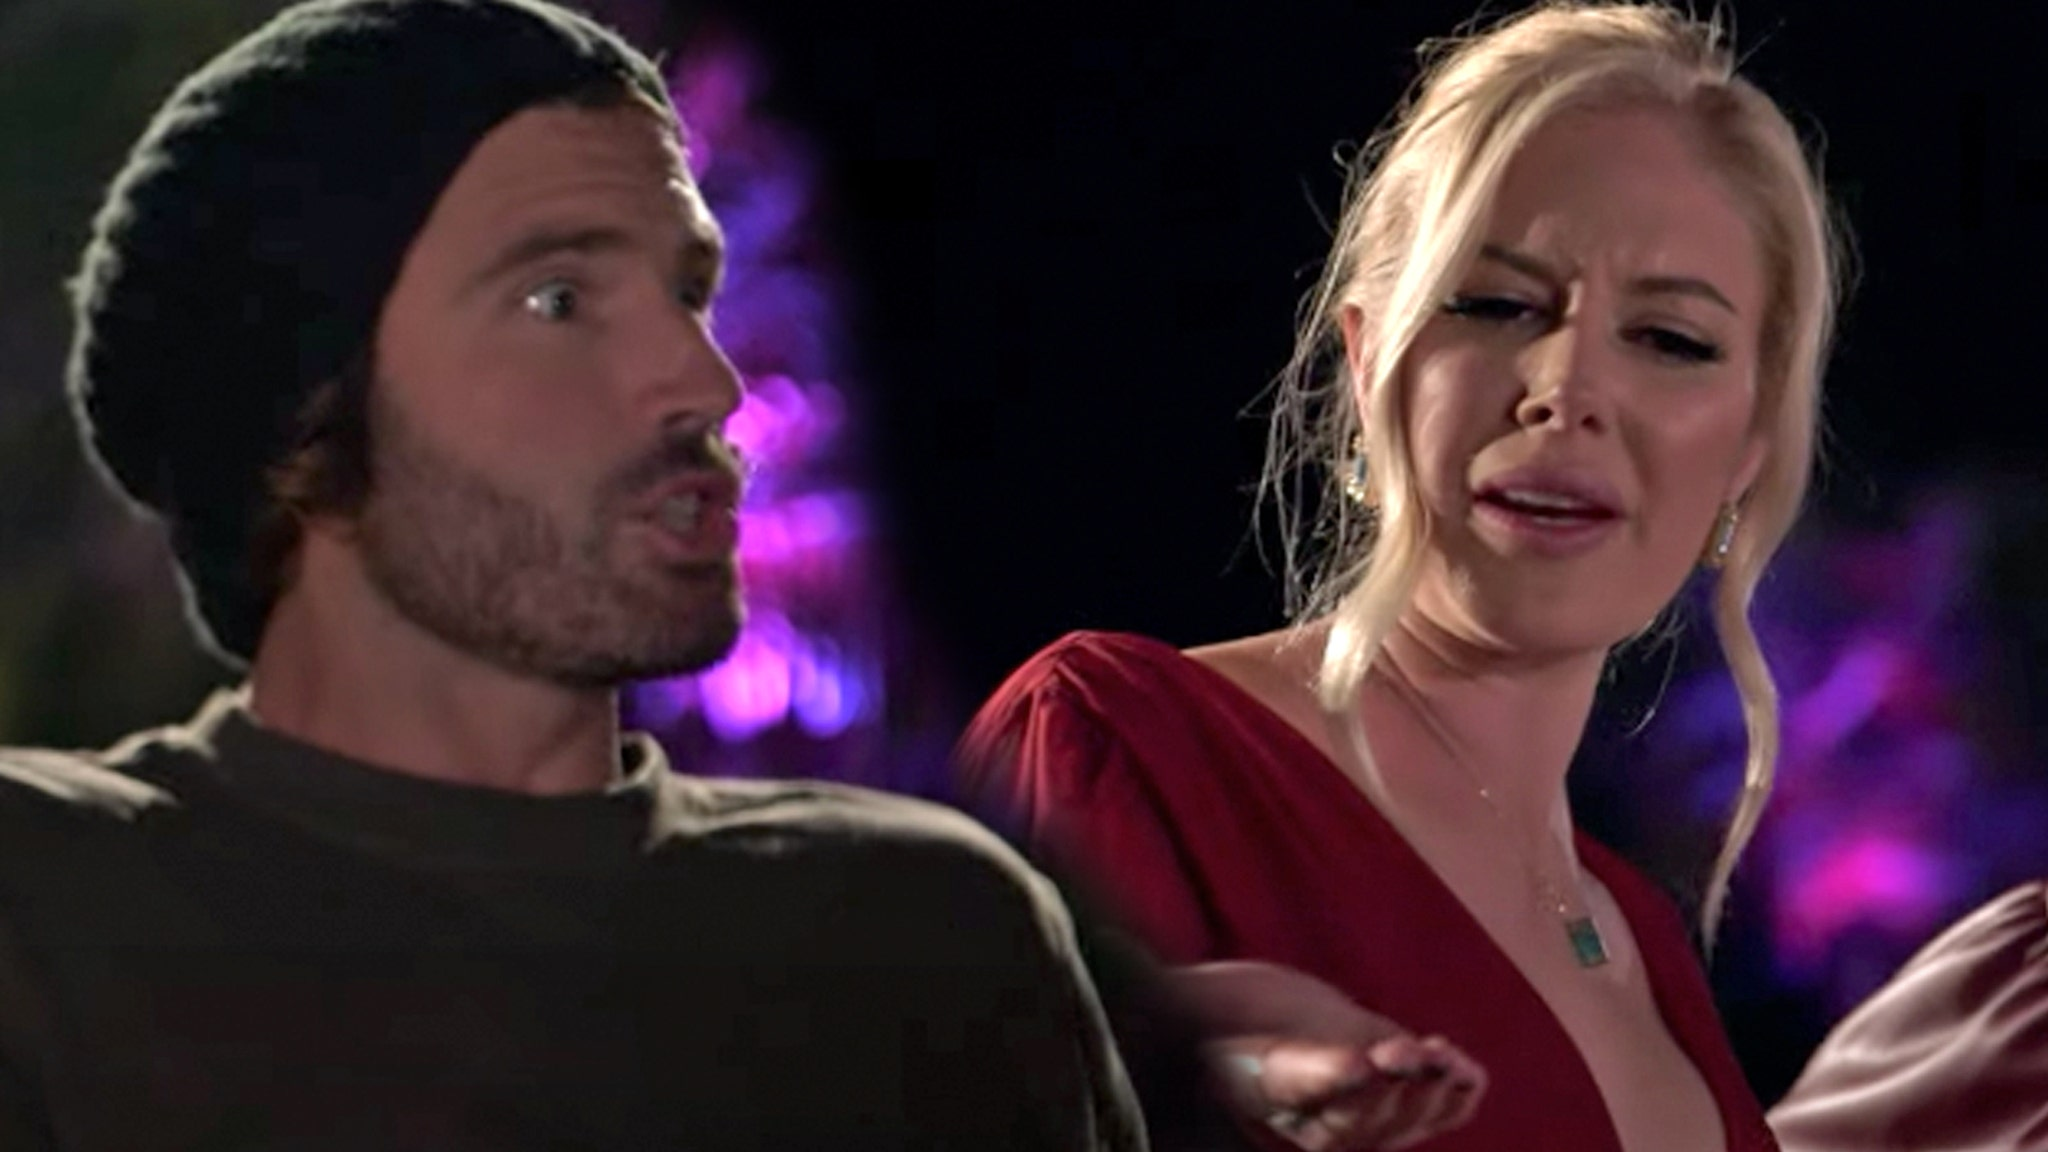 Heidi Montag Gets Into A Drunken Argument With Brody Jenner On The Hills: New Beginnings